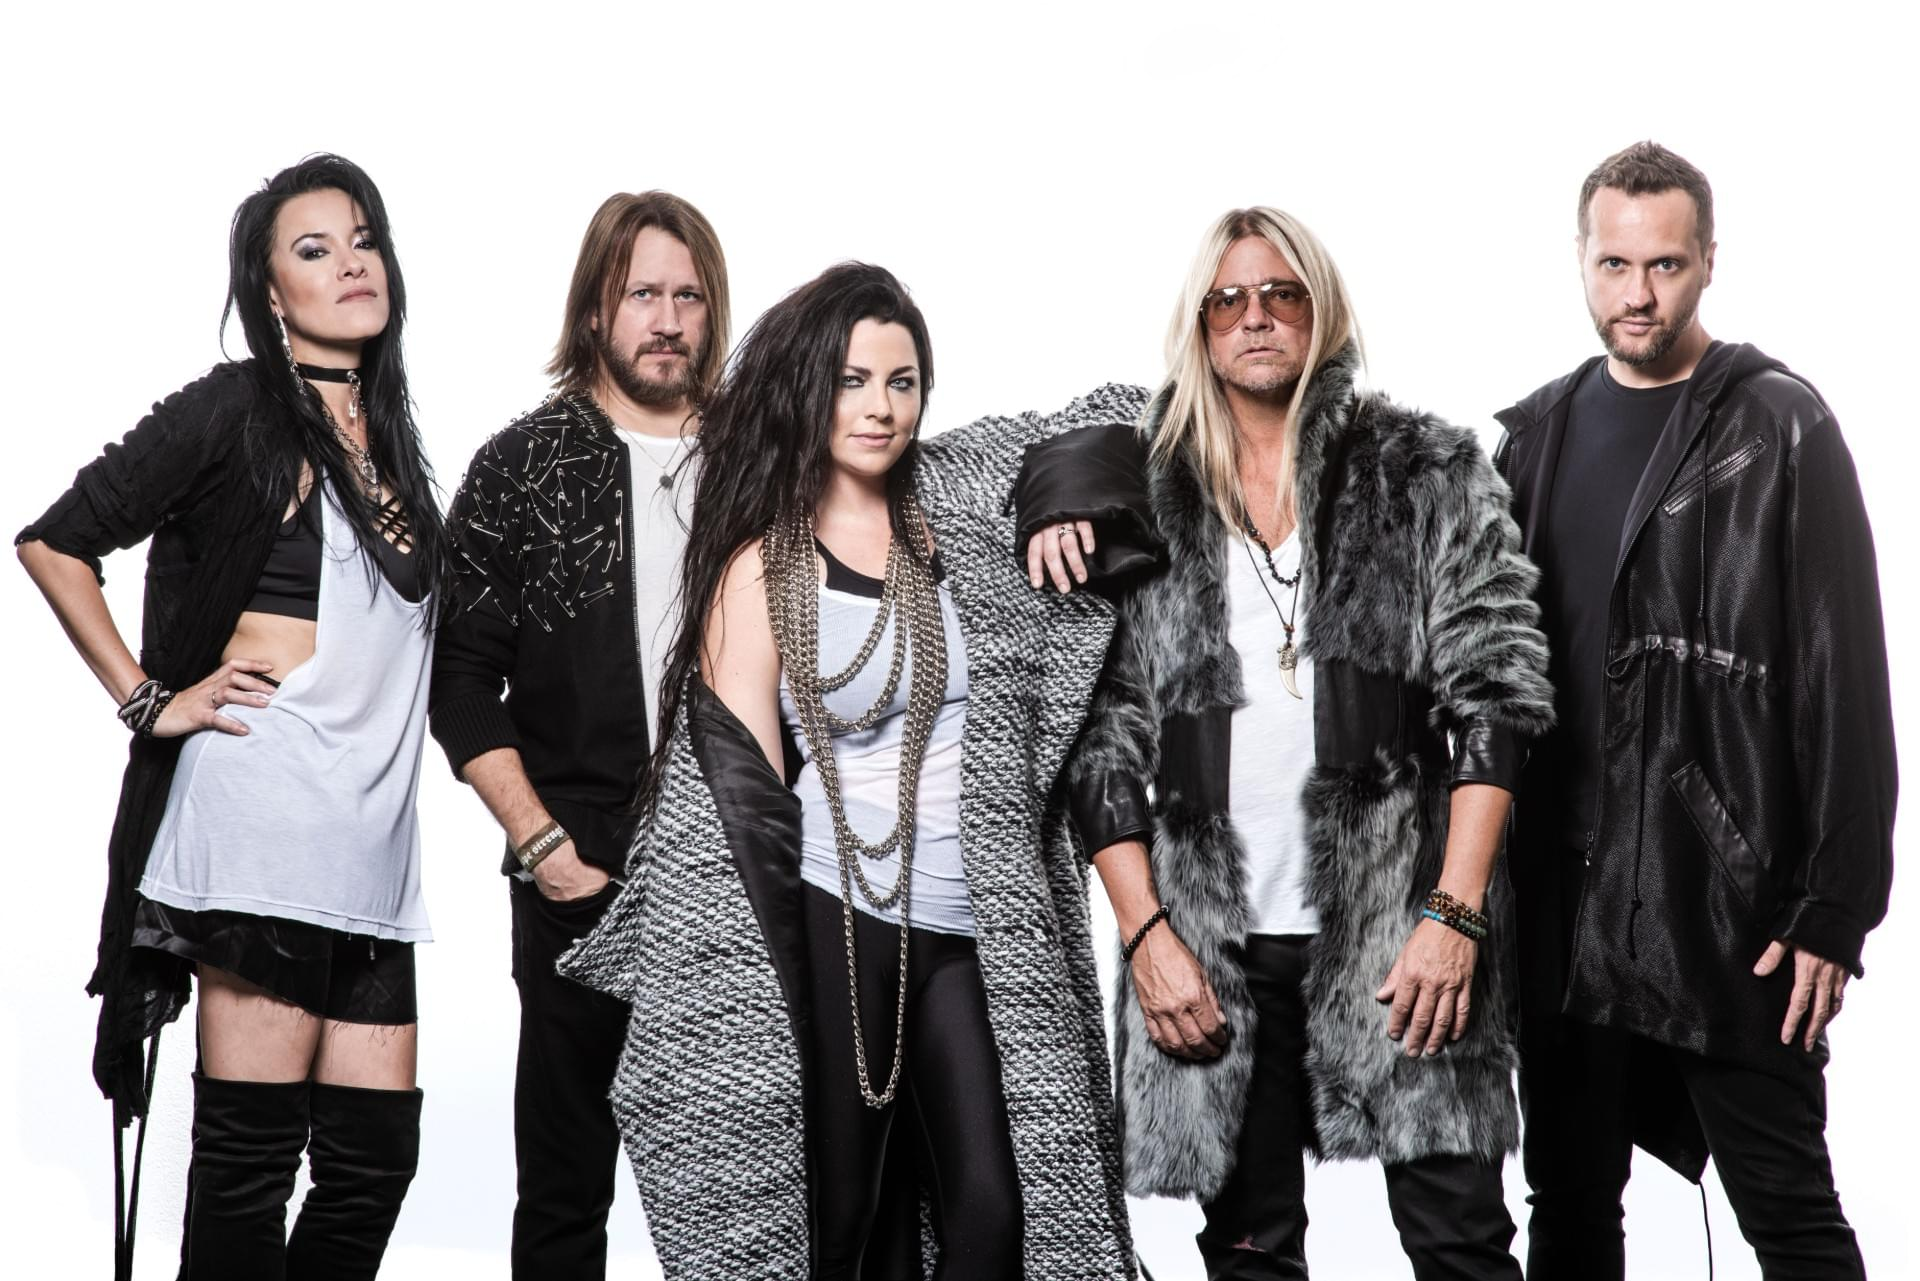 Evanescence Releases New Song 'Better Without You' [AUDIO]